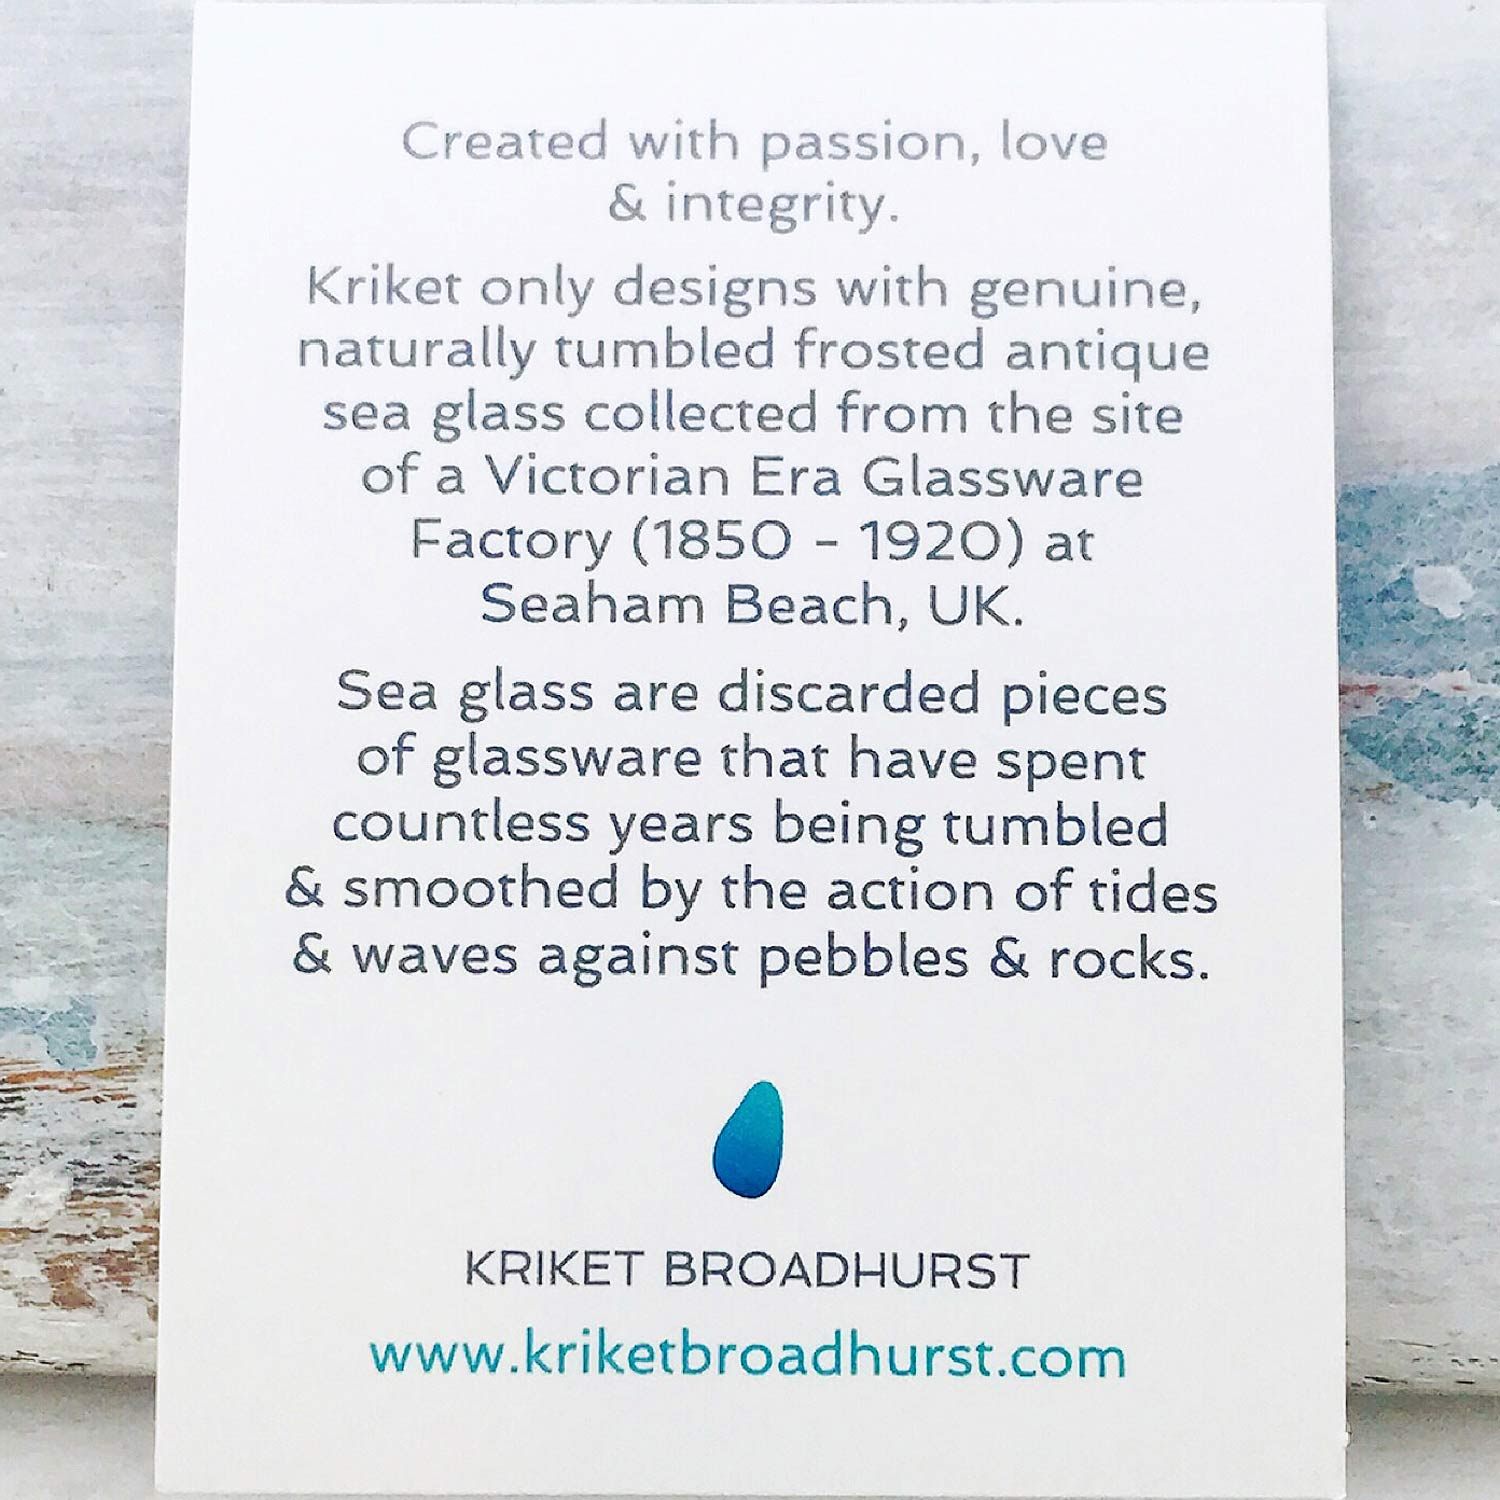 kriket-broadhurst jewellery history of seaglass